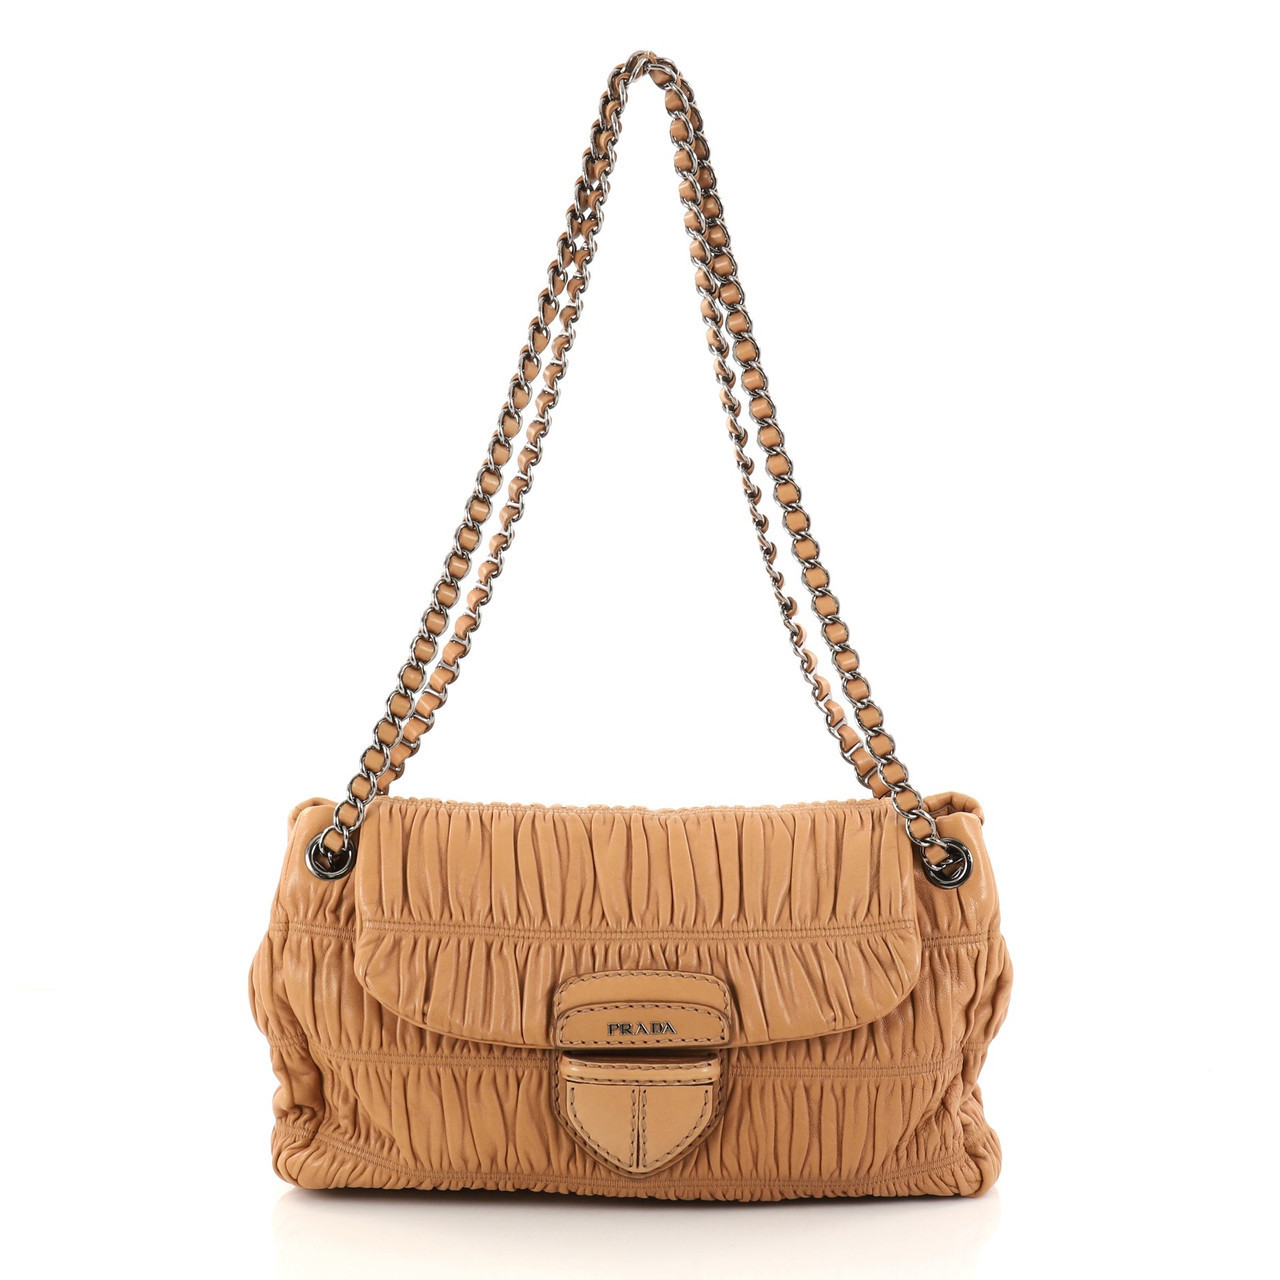 Buy: Gaufre Chain Flap Shoulder Bag Nappa Leather